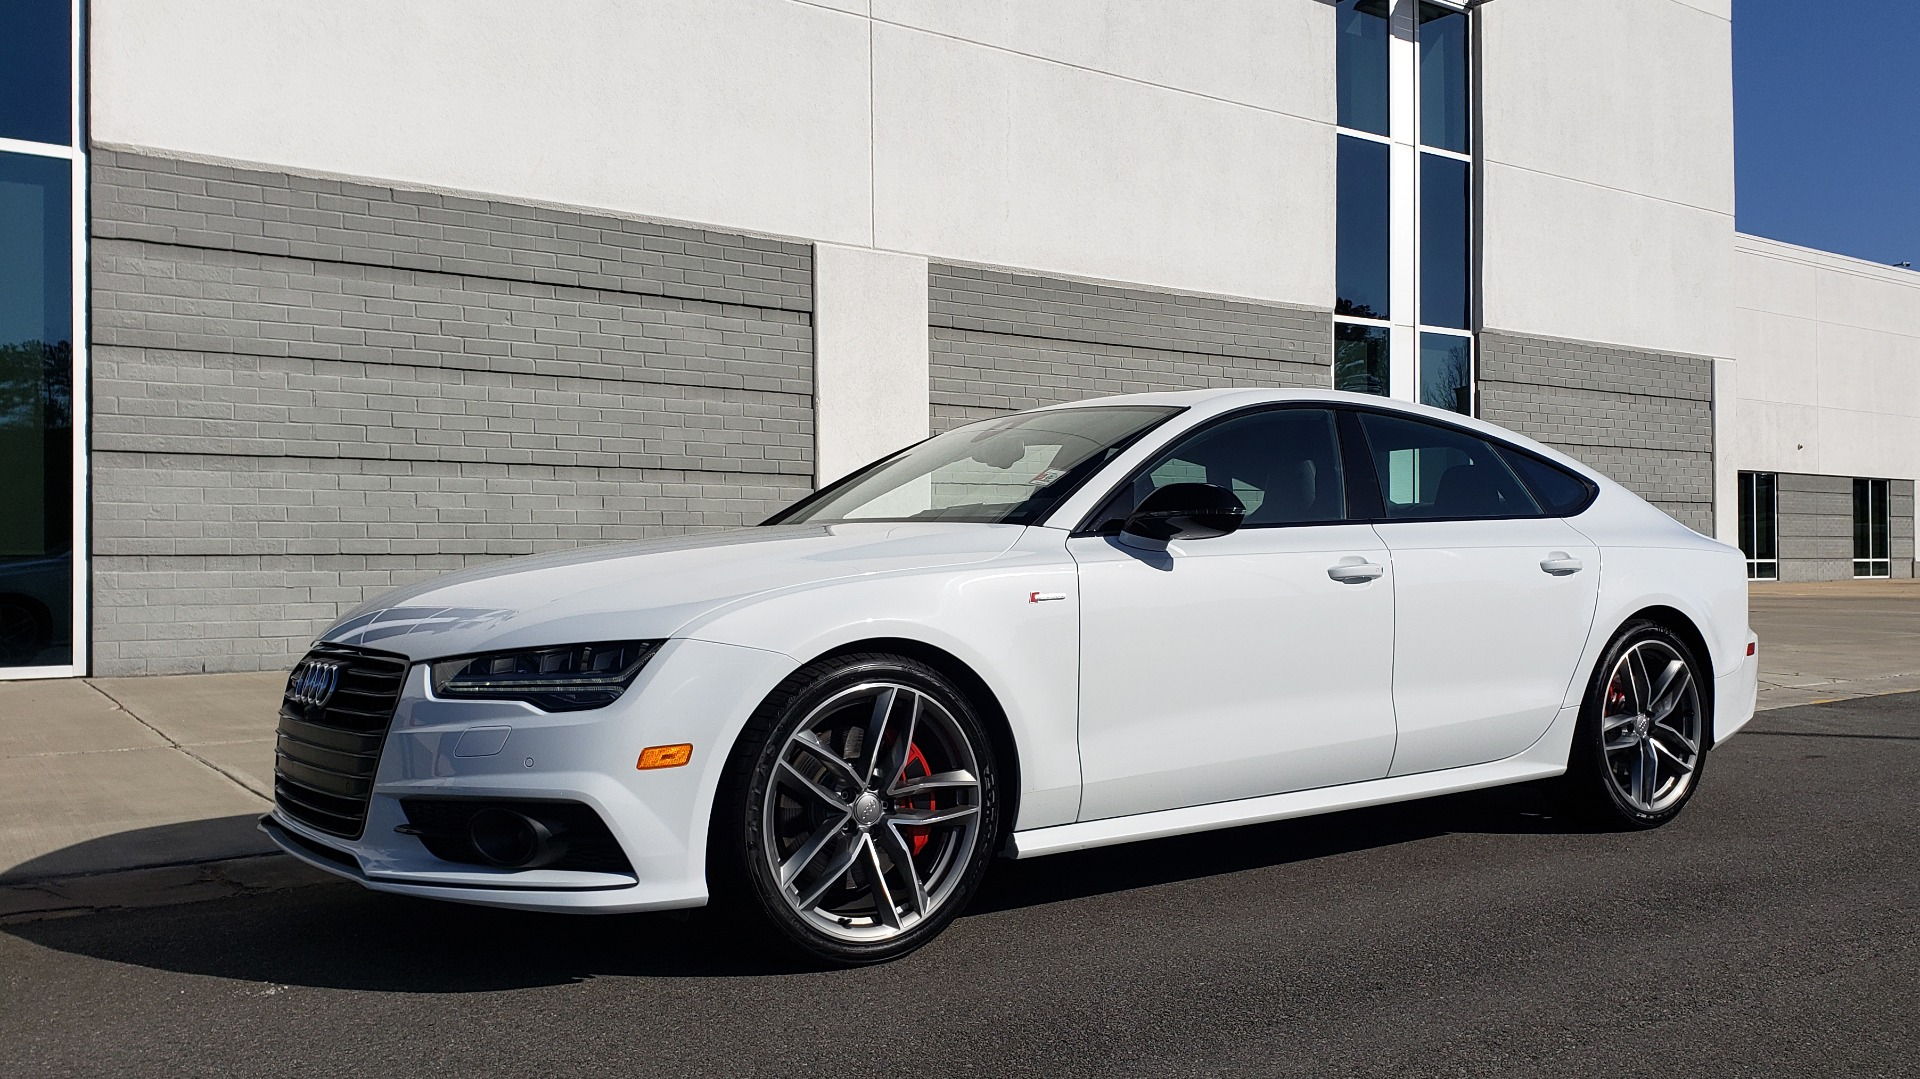 Used 2017 Audi A7 COMPETITION PRESTIGE 3.0T / NAV / DRVR ASST / ADAPT CRUISE for sale $41,995 at Formula Imports in Charlotte NC 28227 4